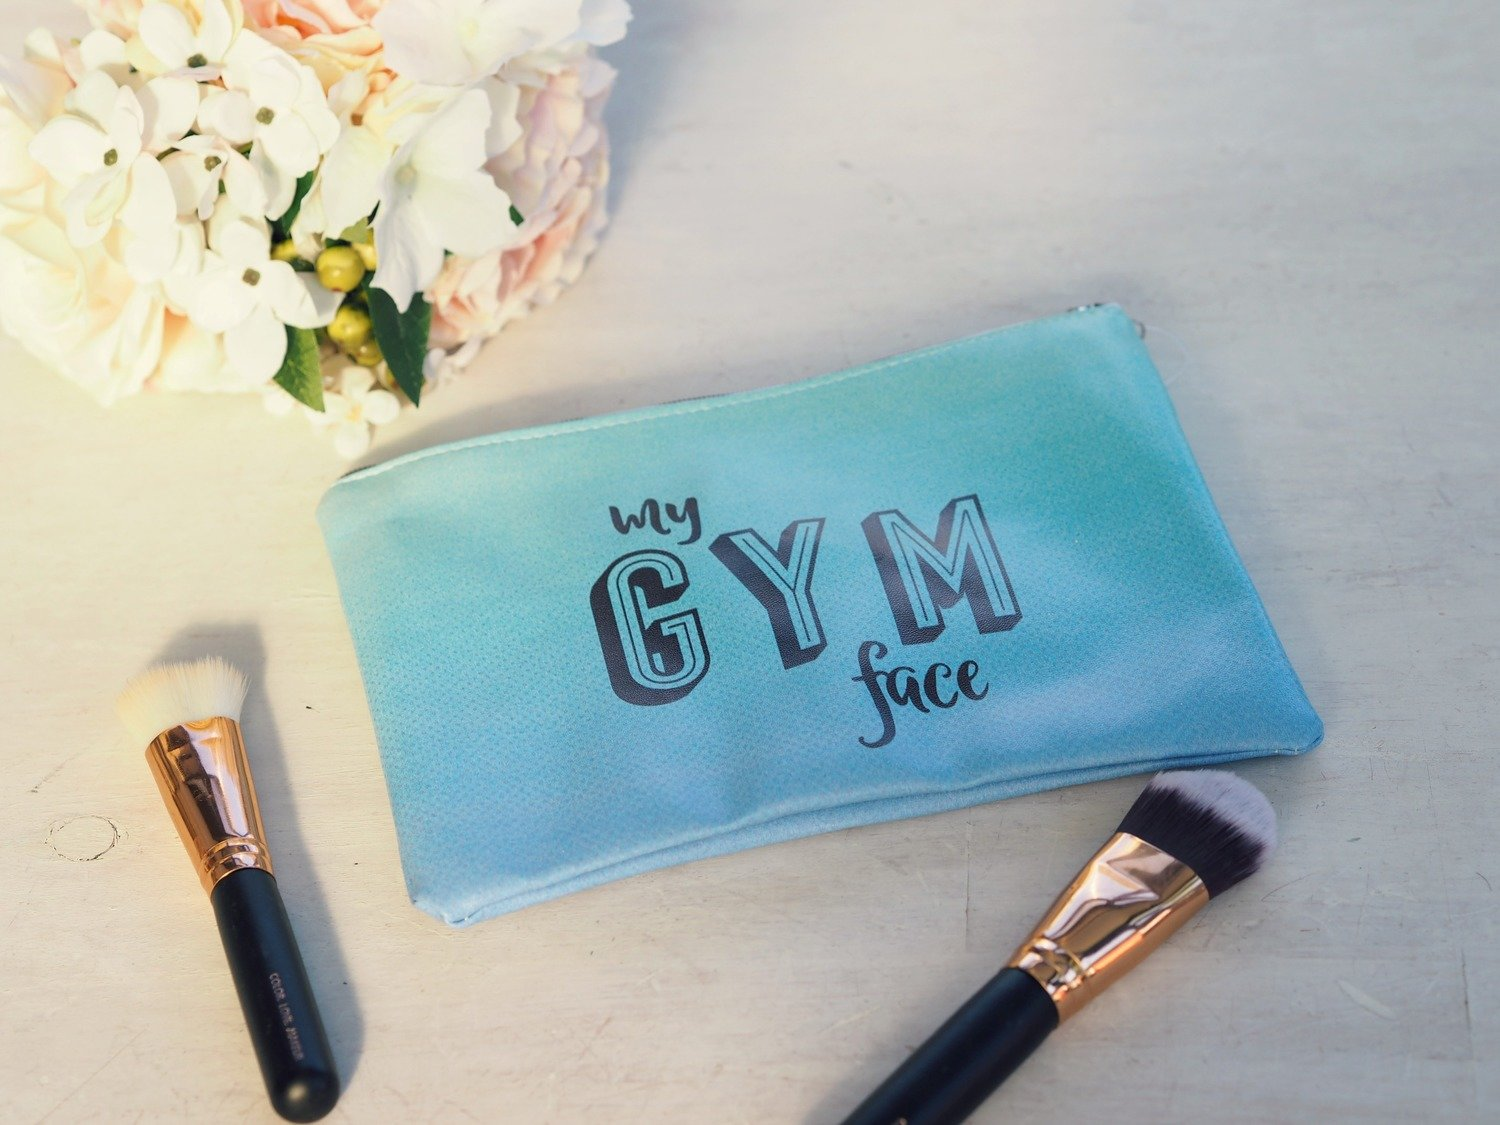 My Gym Face Medium Makeup Bag